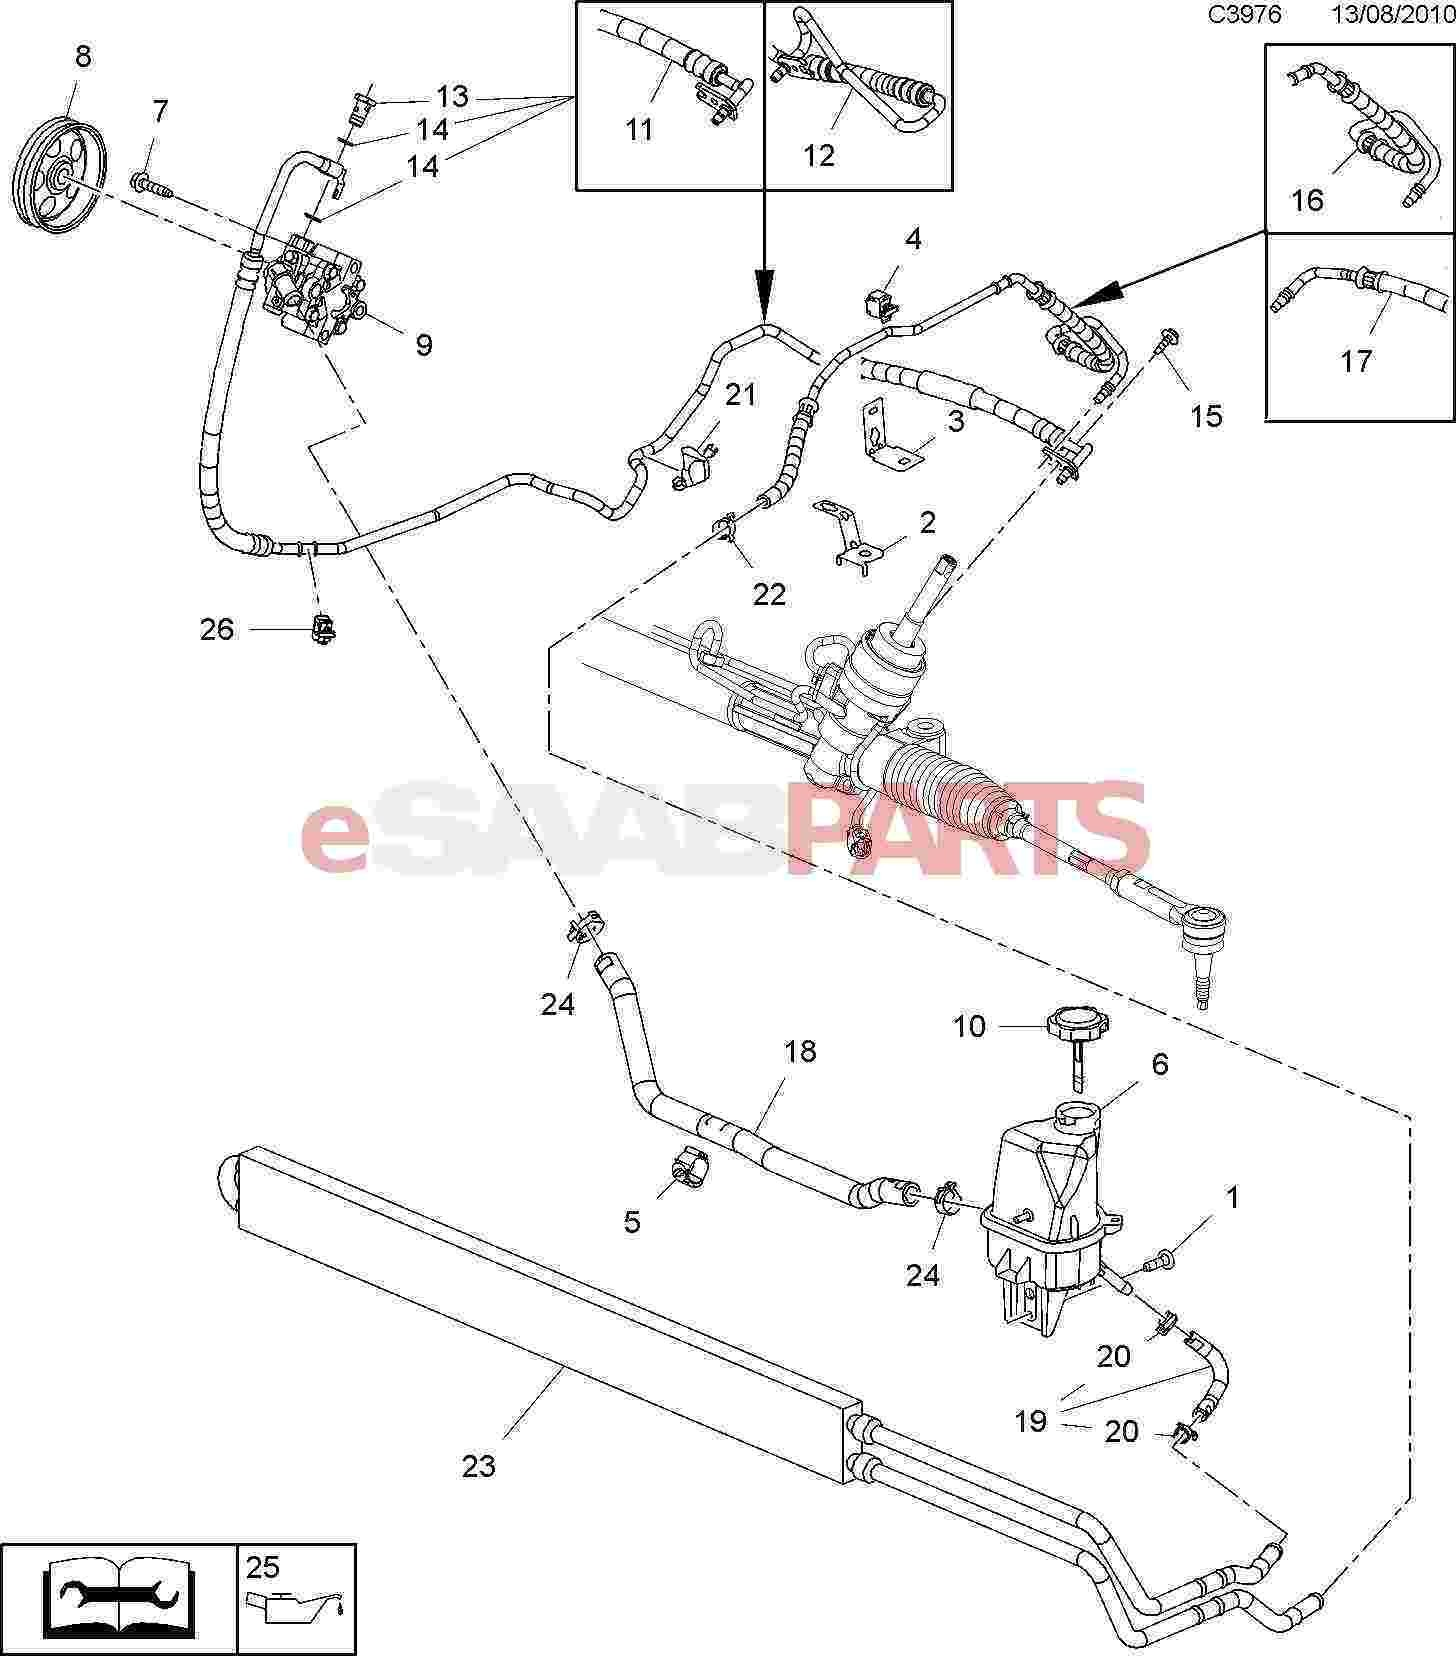 Hydraulic Steering Diagram ] Saab Sealing Ring Genuine Saab Parts From Esaabparts Of Hydraulic Steering Diagram